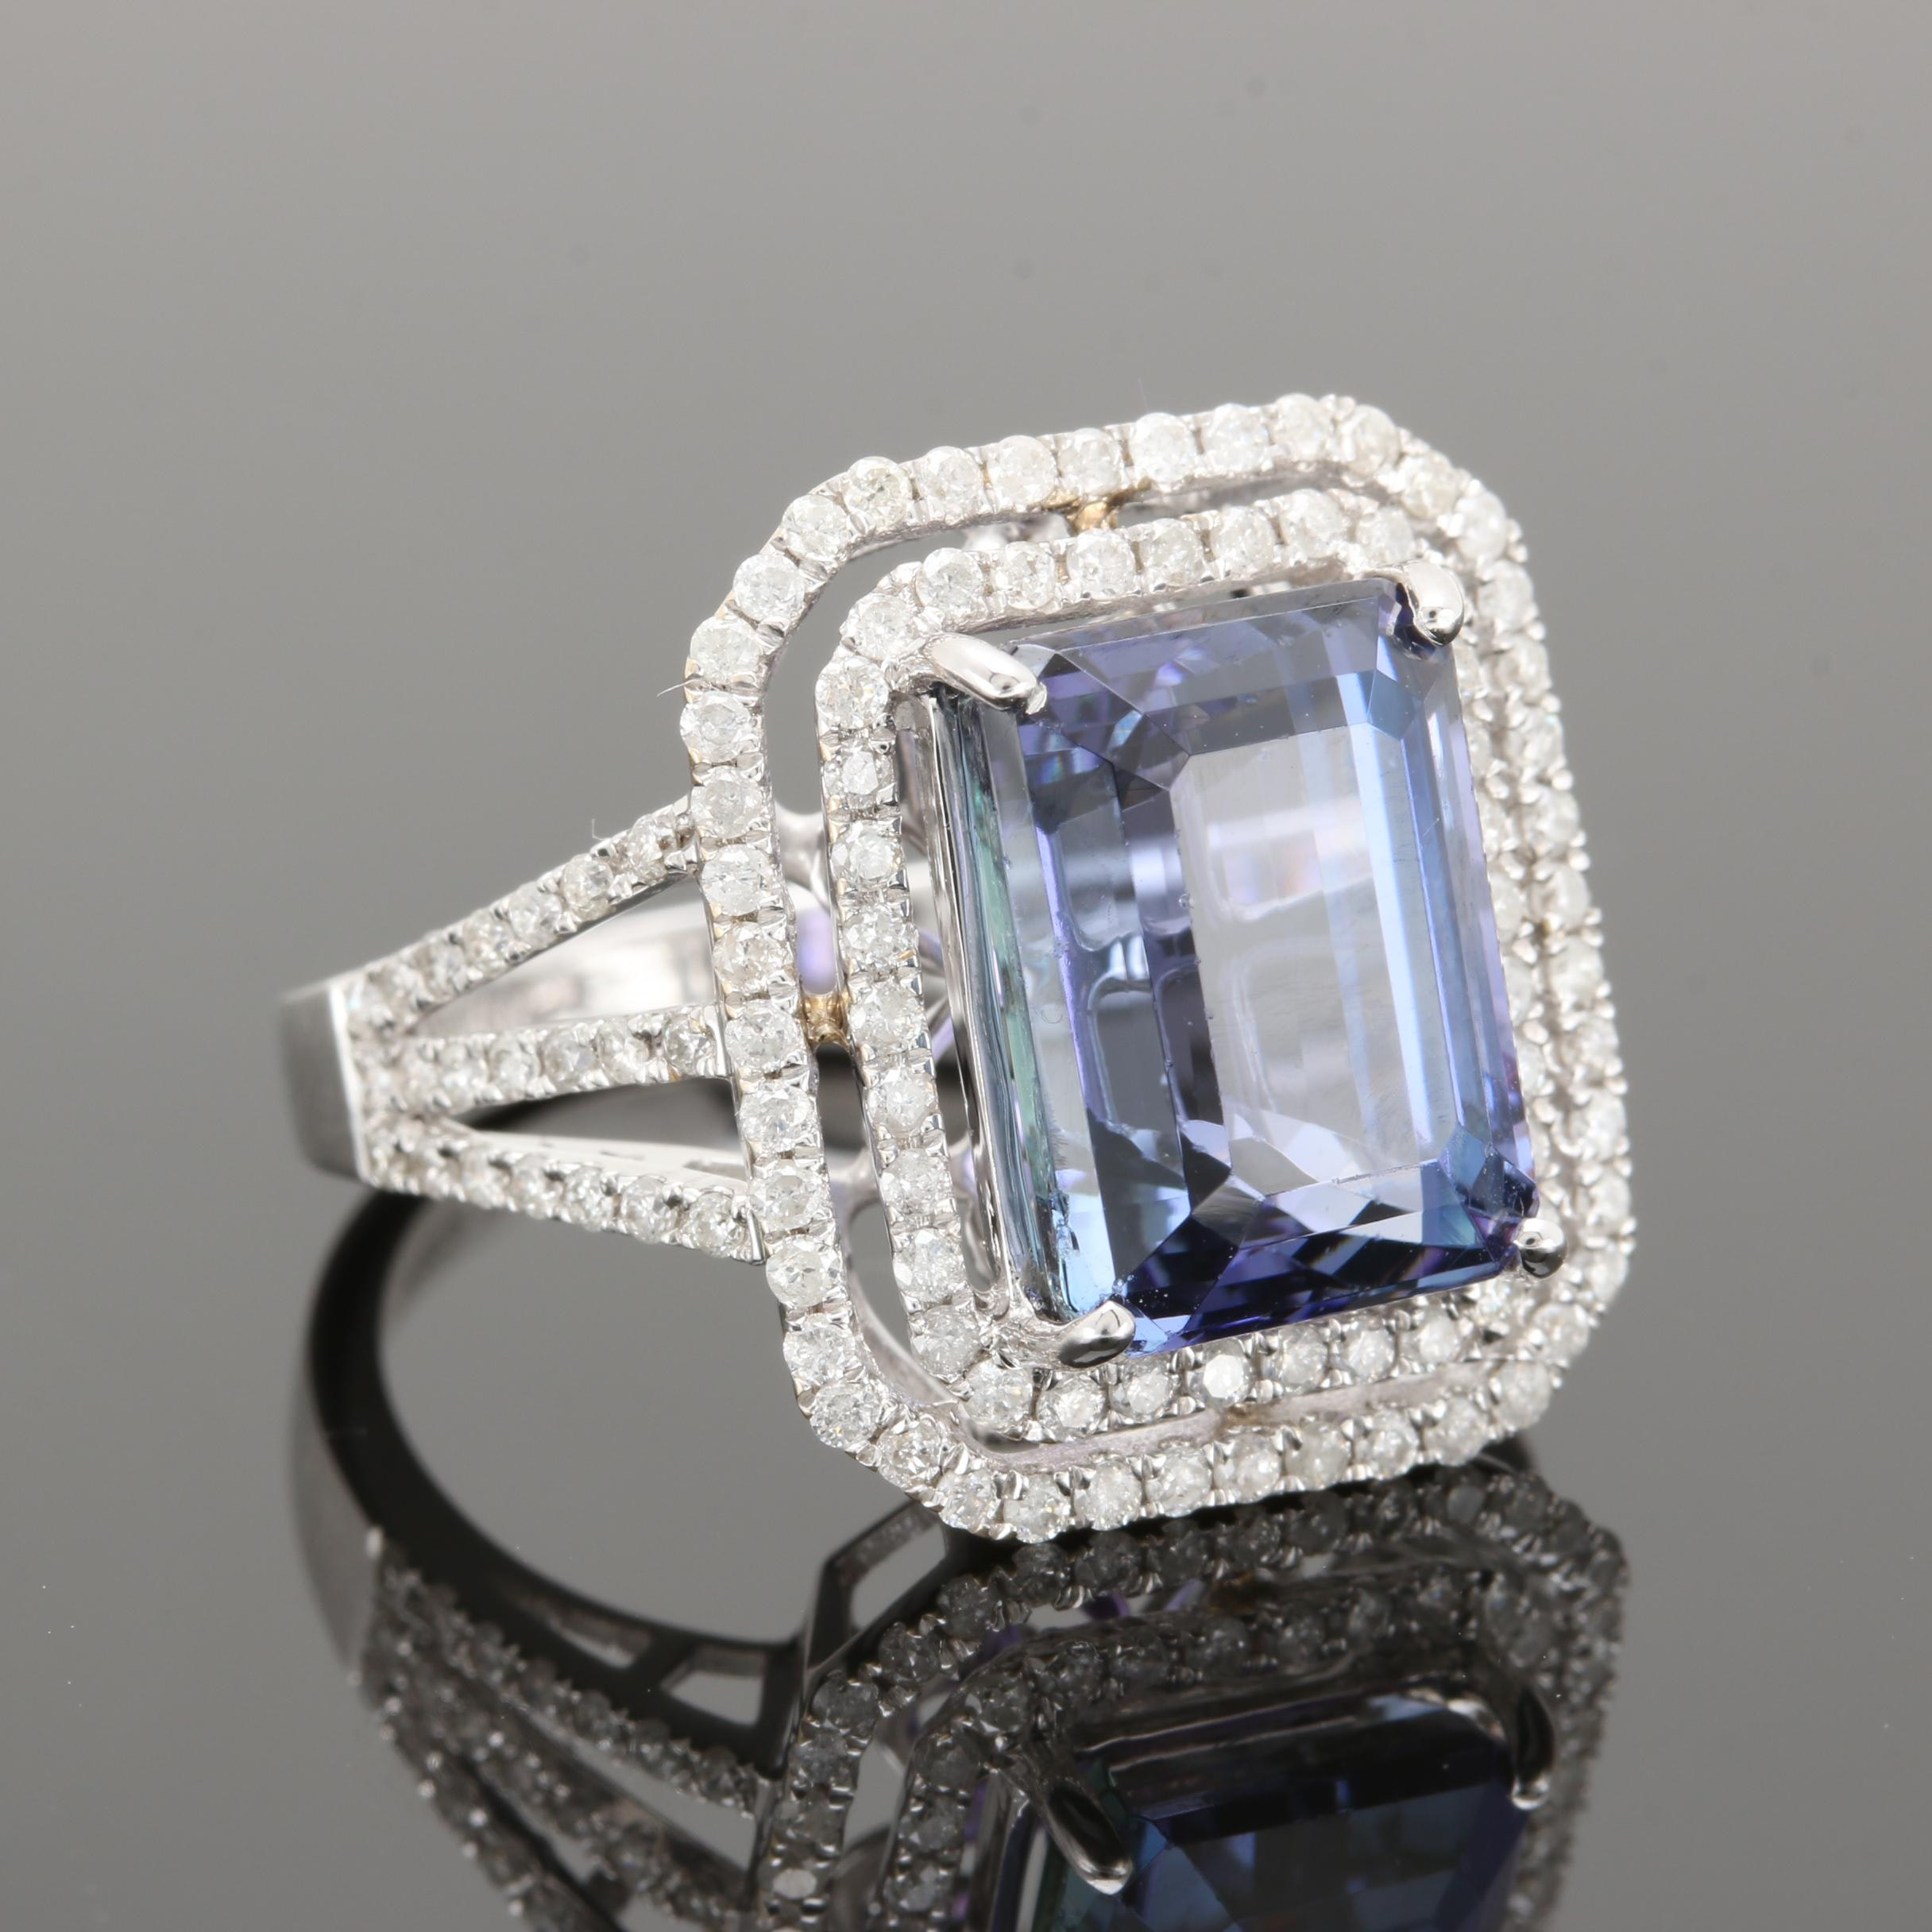 18K White Gold 6.87 CT Tanzanite and Diamond Ring With GIA Report